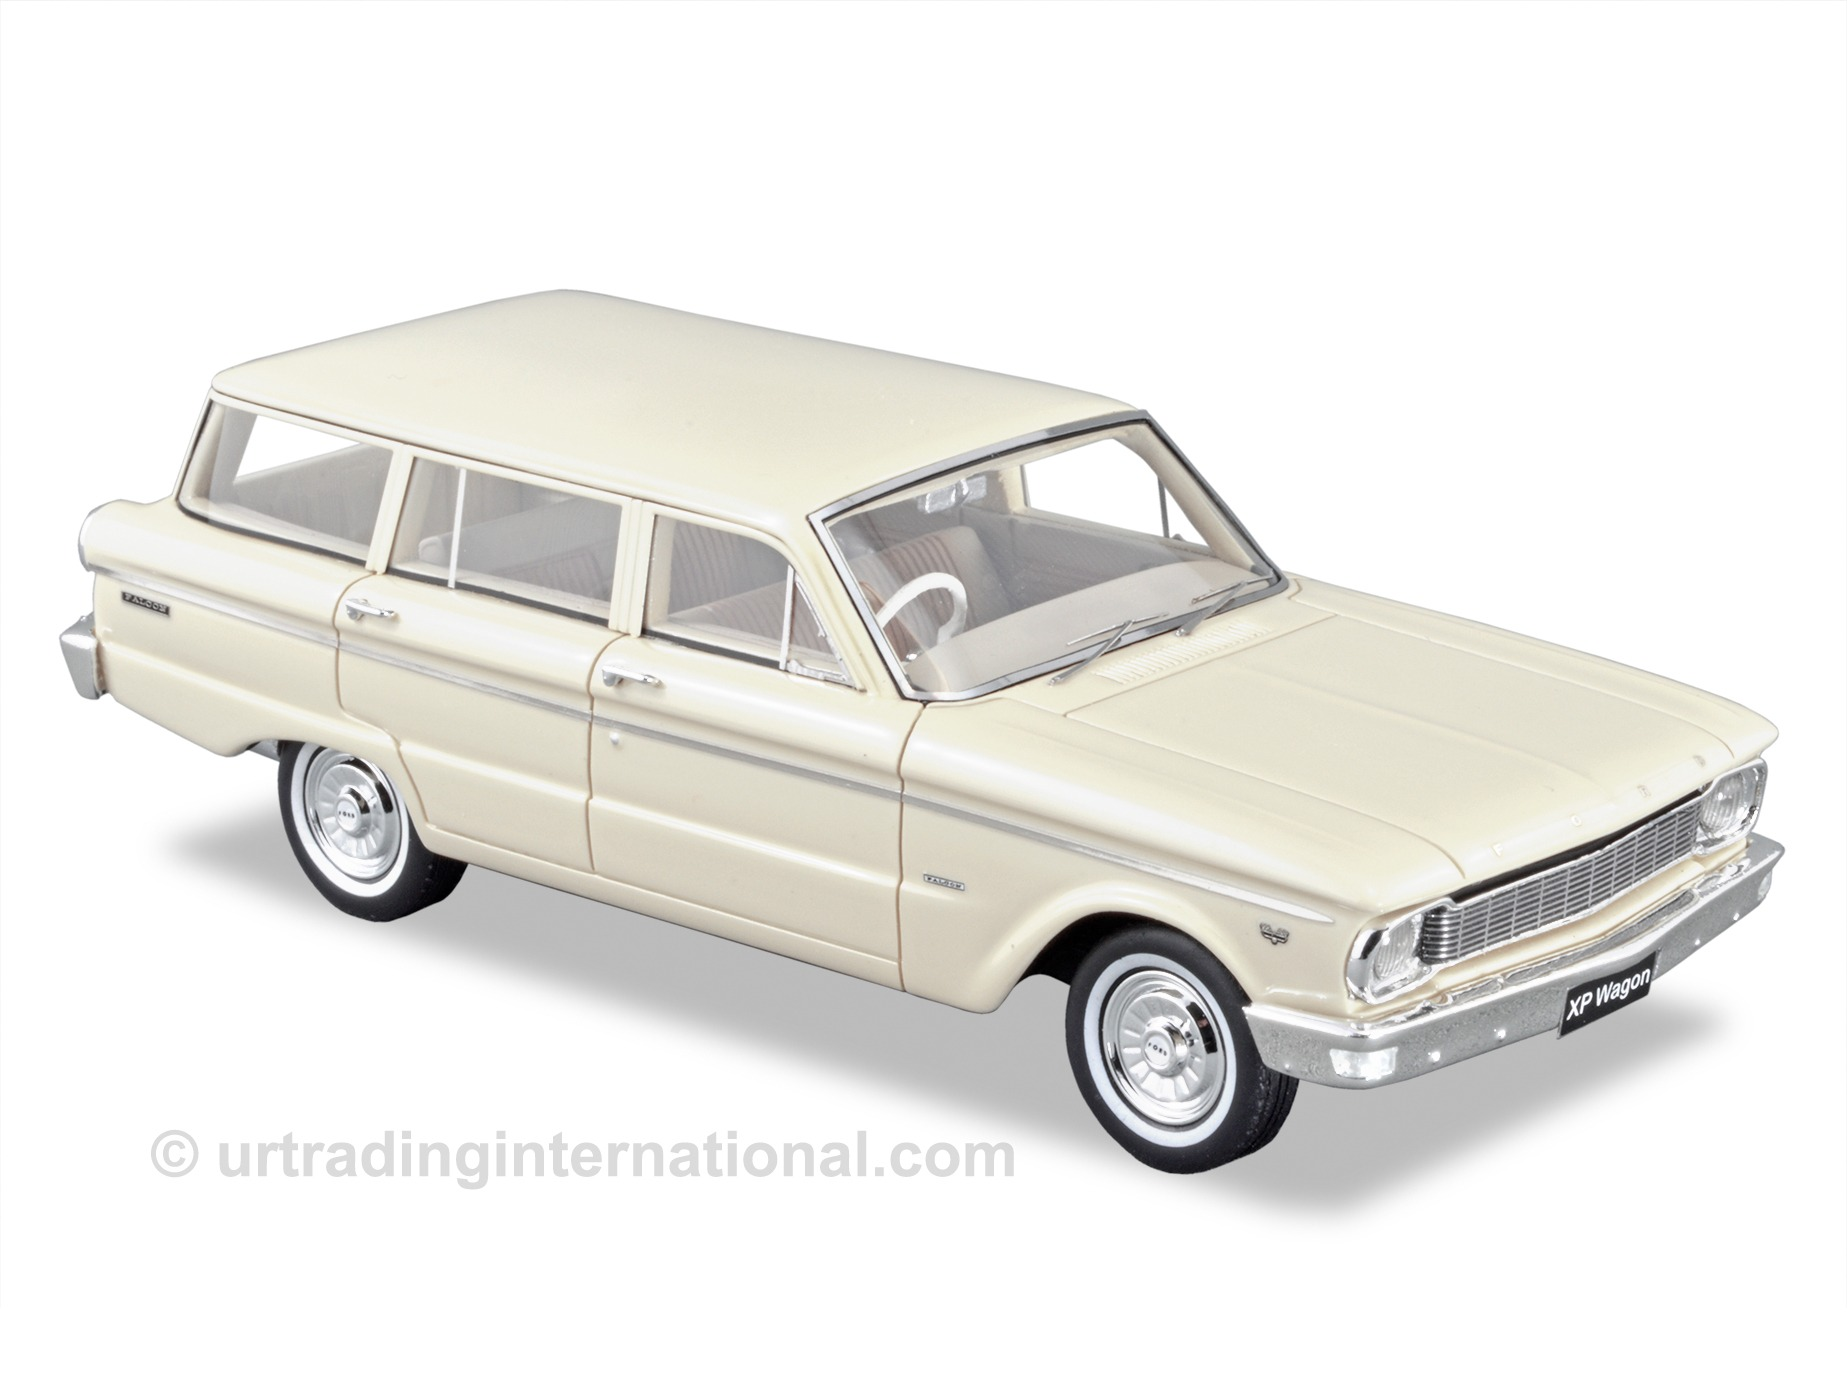 1965 Ford XP Falcon Deluxe Station Wagon – Arctic White